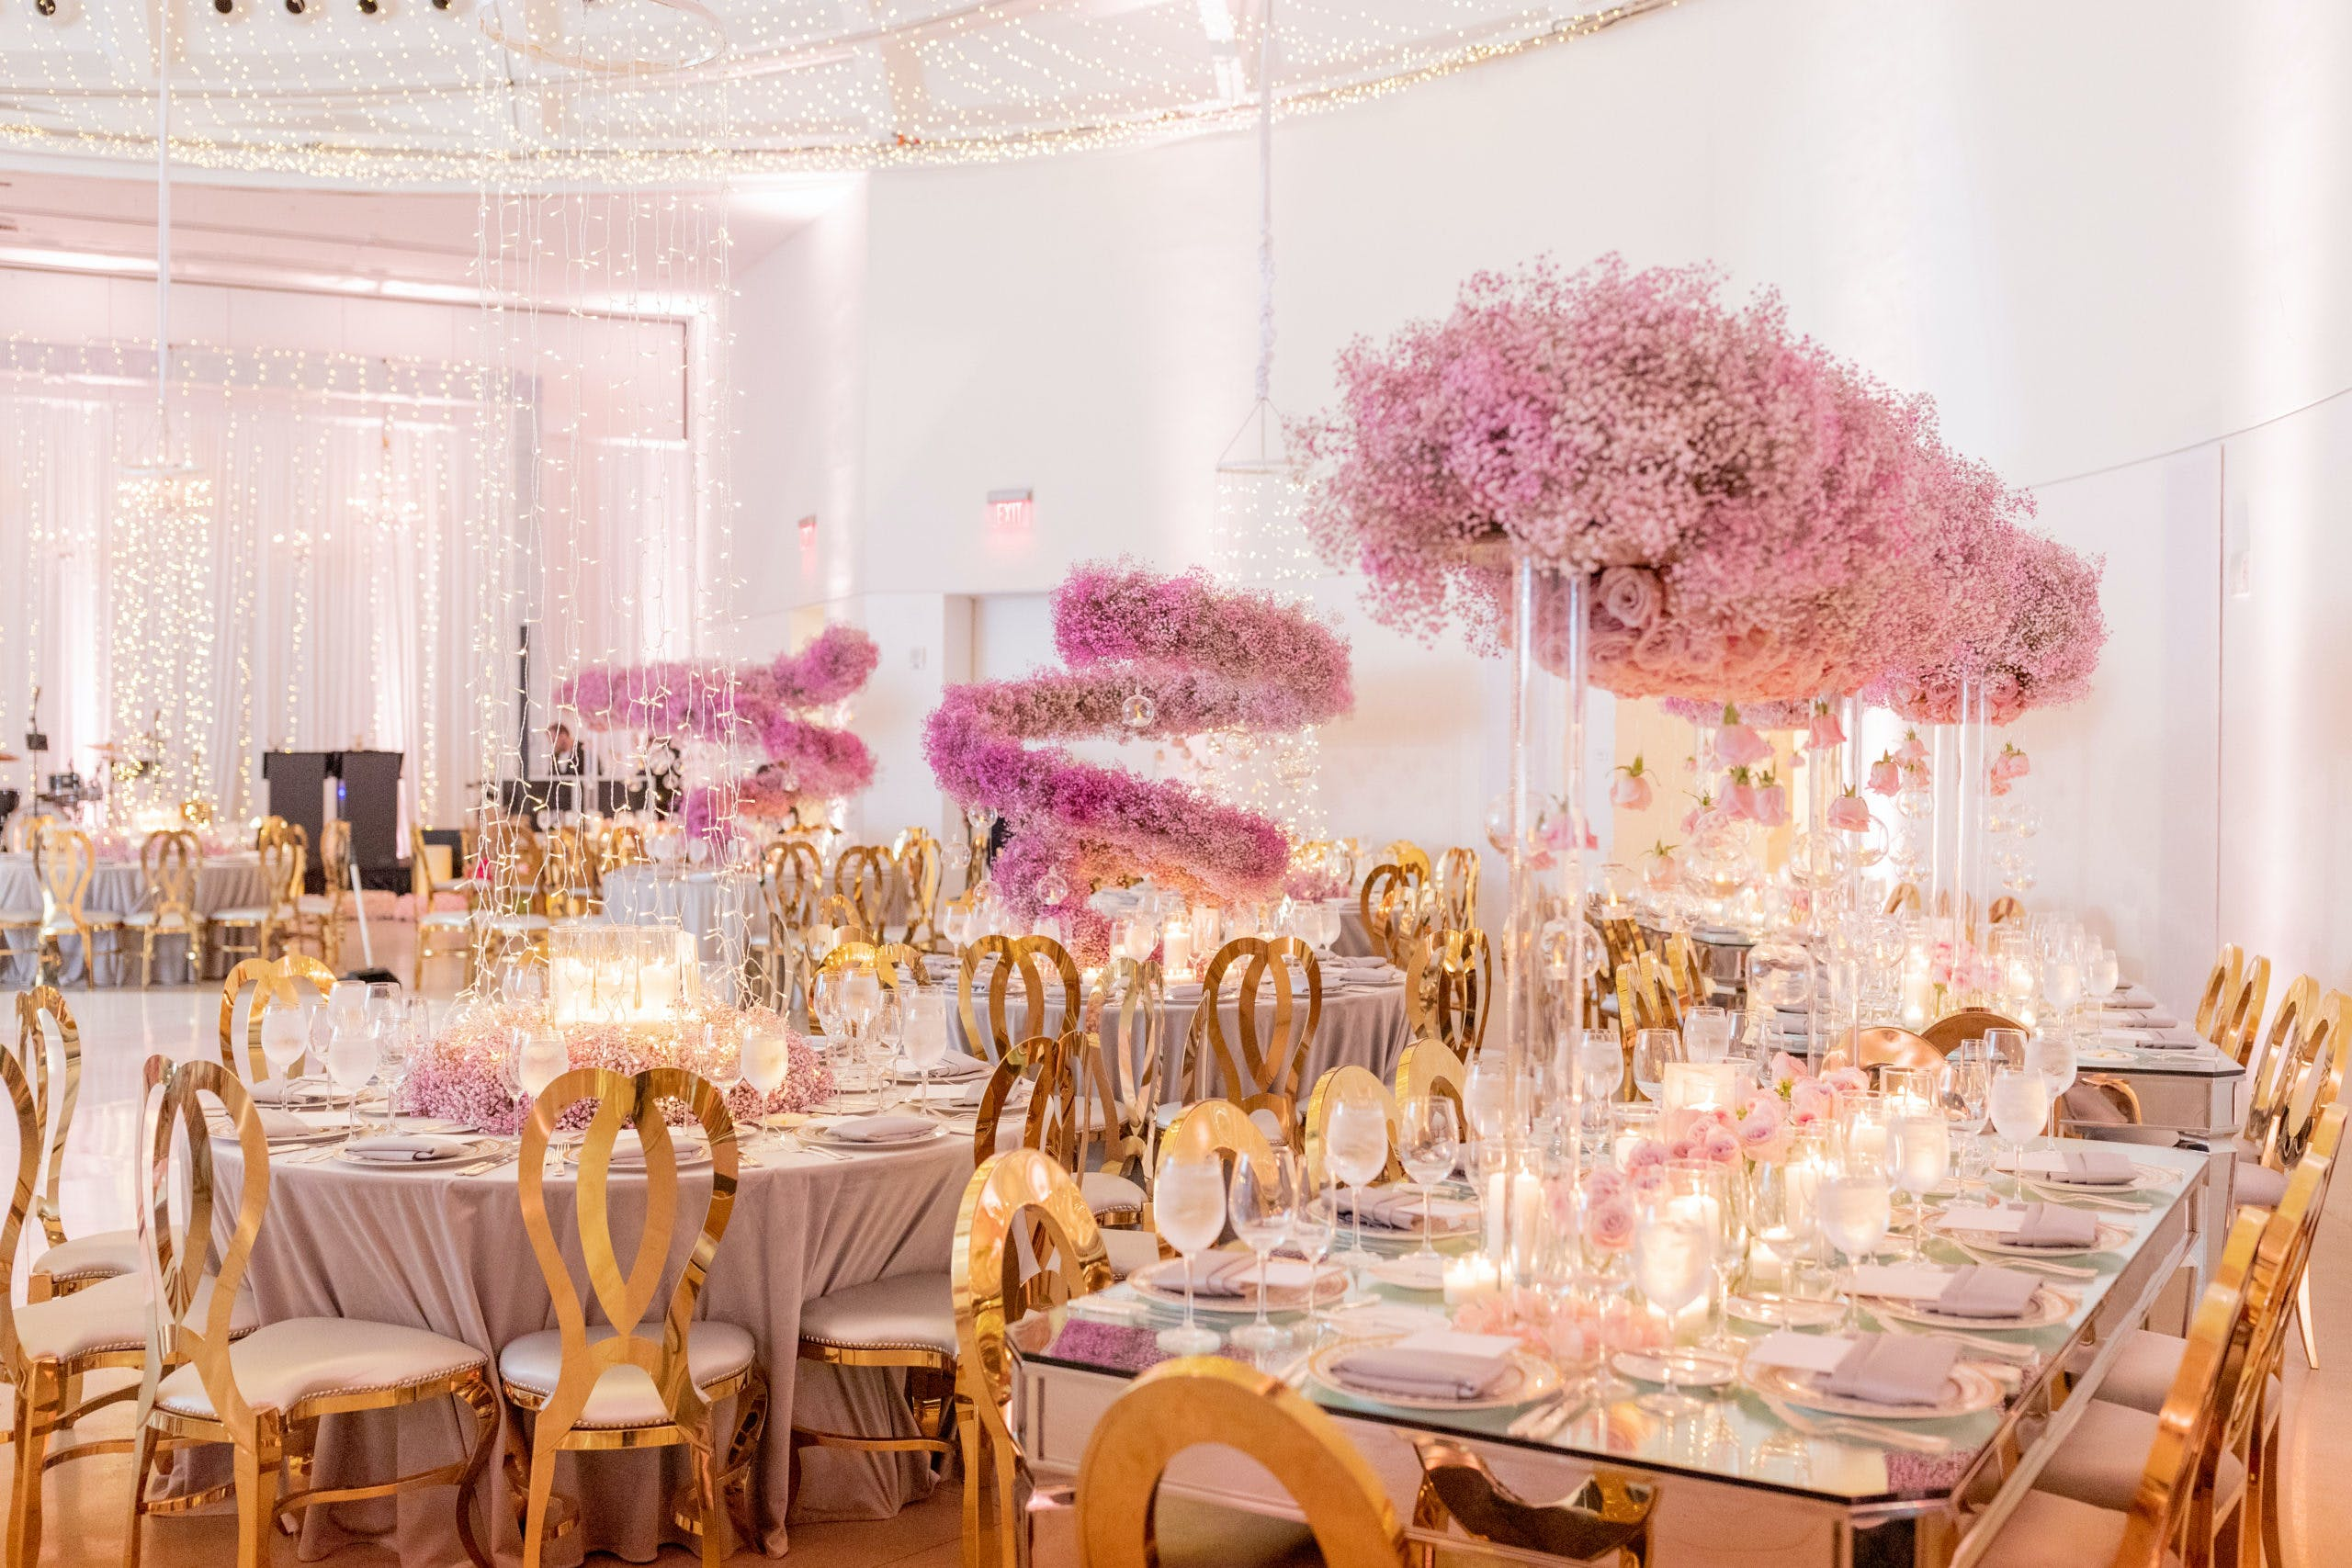 Modern Wedding Reception with Gold Tablescapes and Pink Corkscrew Baby's Breath Centerpieces   PartySlate